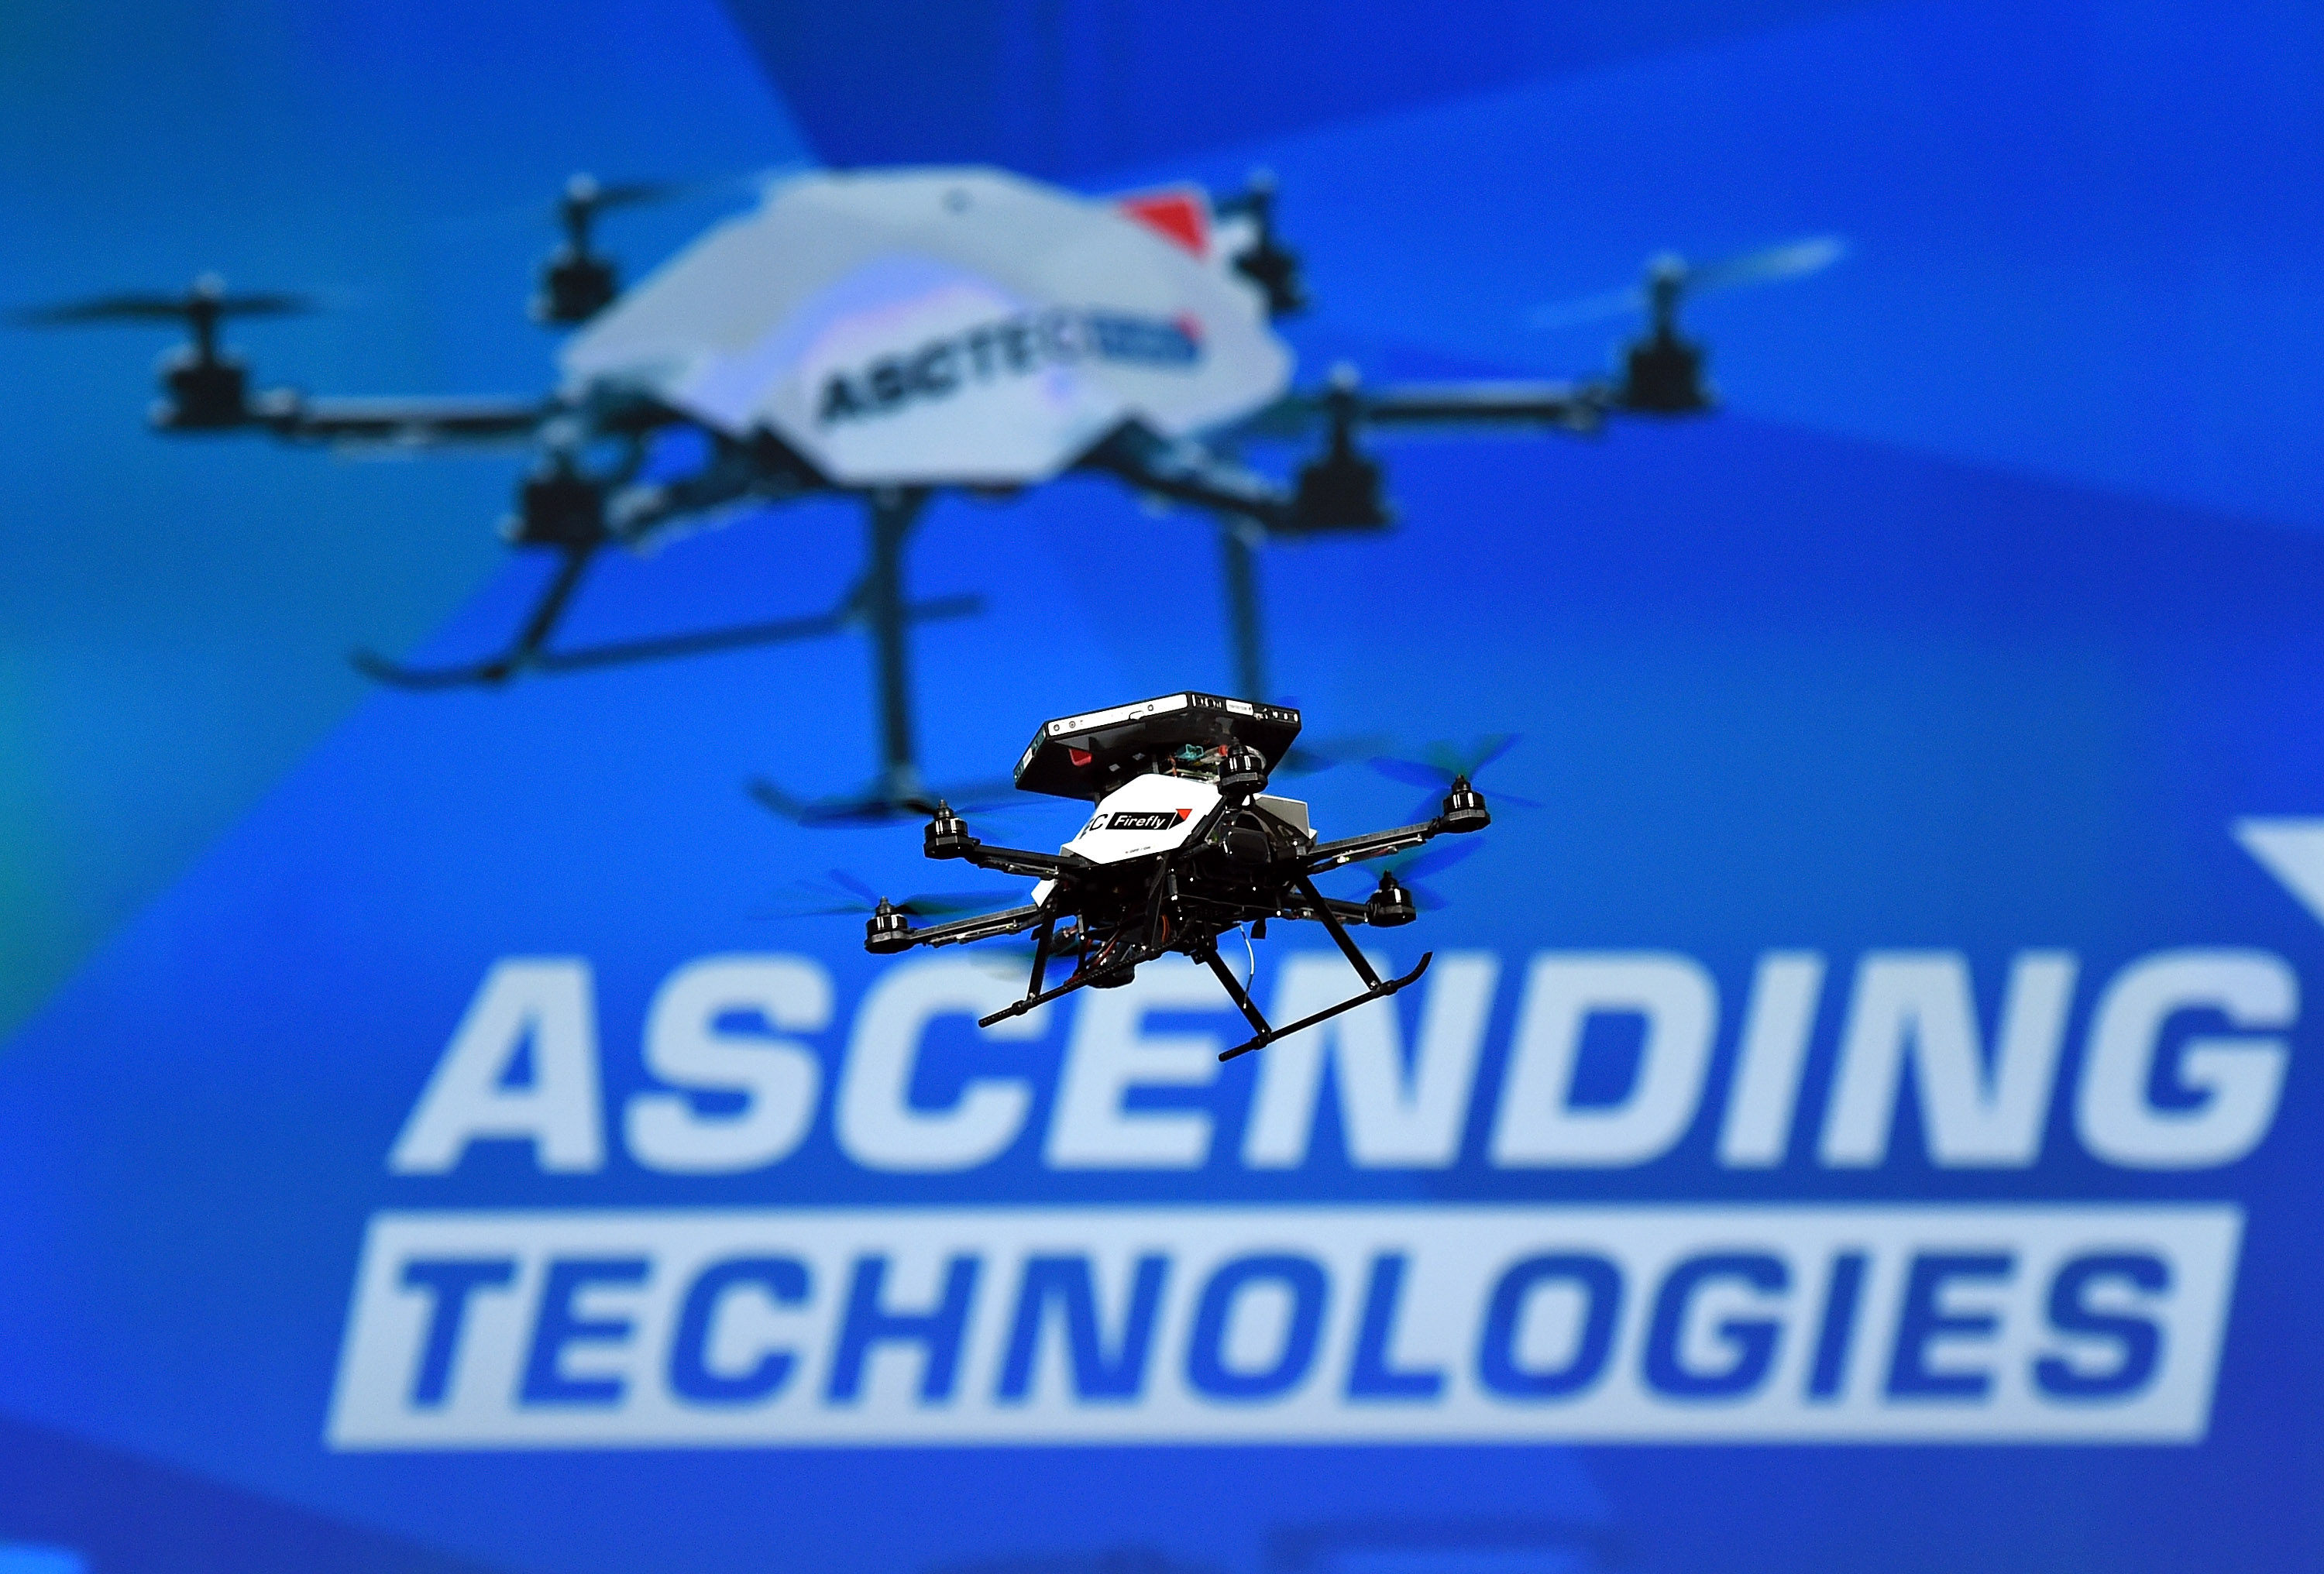 A worker demonstrates the AscTec Firefly multi-copter drone at CES on January 6, 2015.